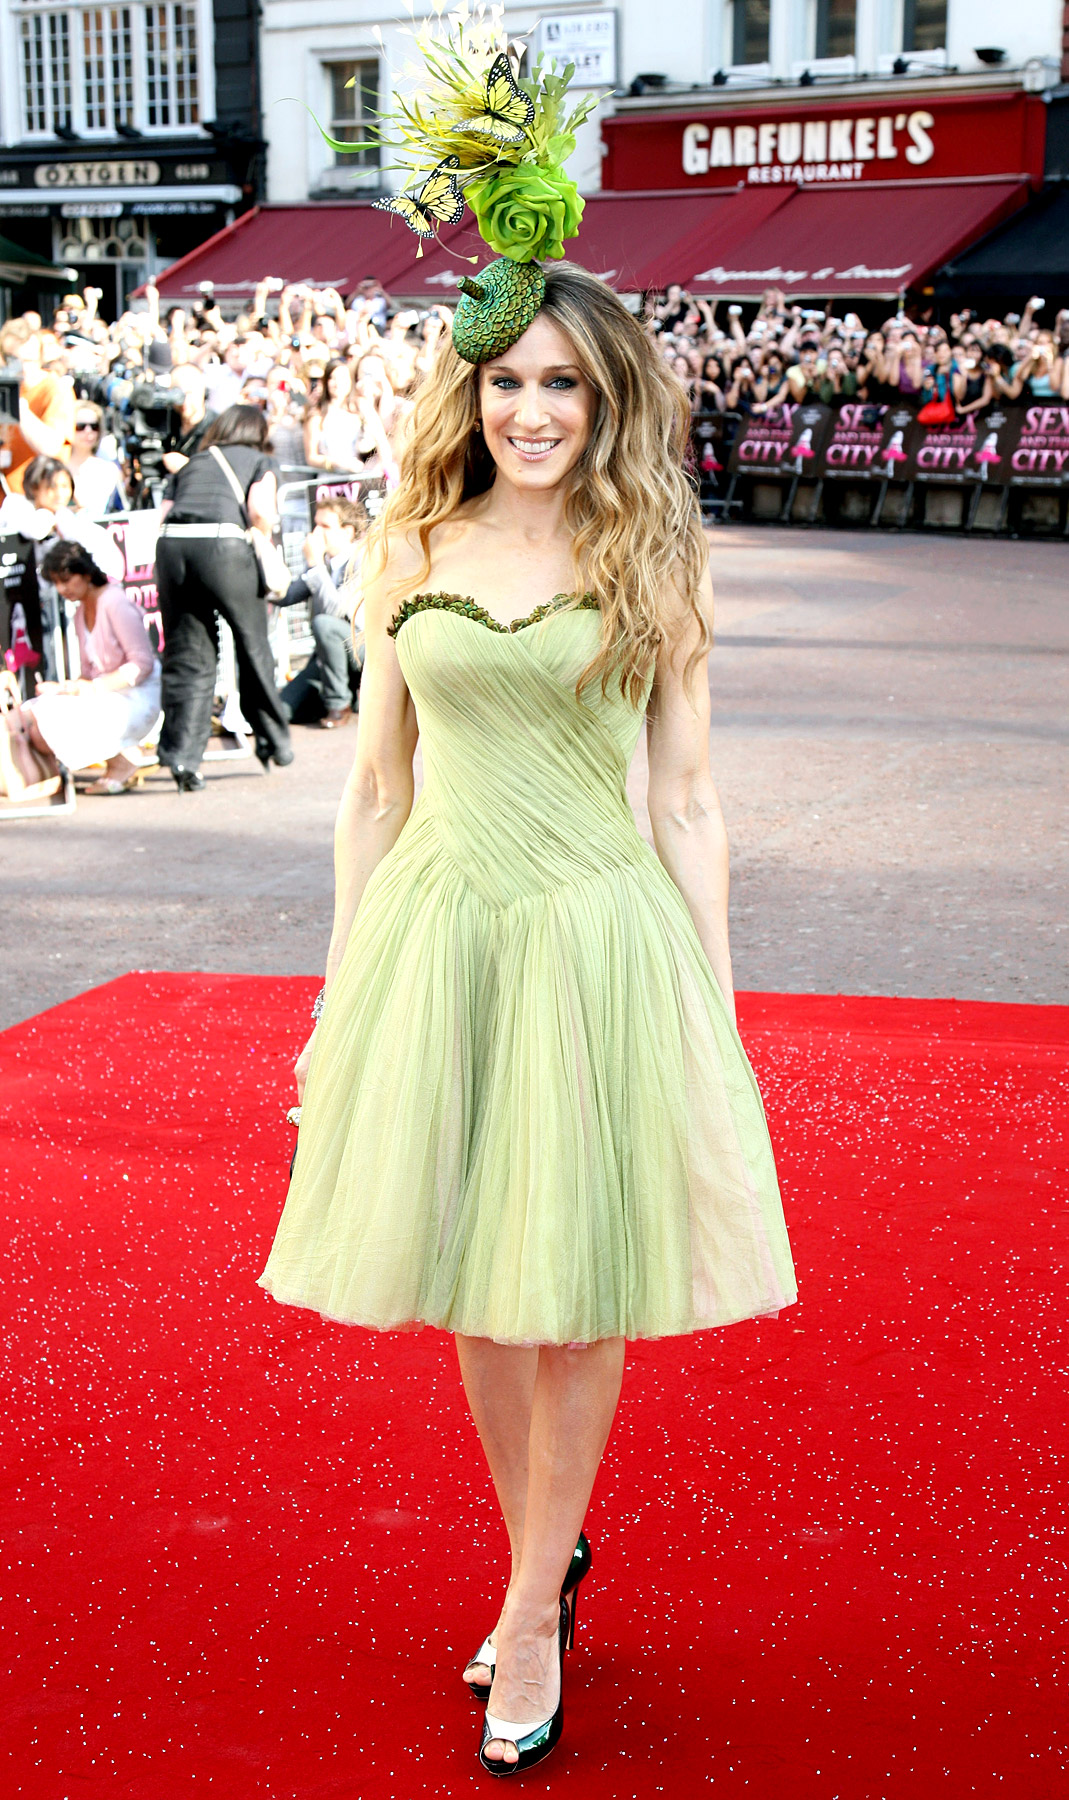 Embracing spring, Parker—who ran the label Halston Heritage from 2010 to 2011—sported a grass-colored Alexander McQueen dress with an avant-garde Philip Treacy fascinator at the Sex and the City movie premiere on May 12, 2008.